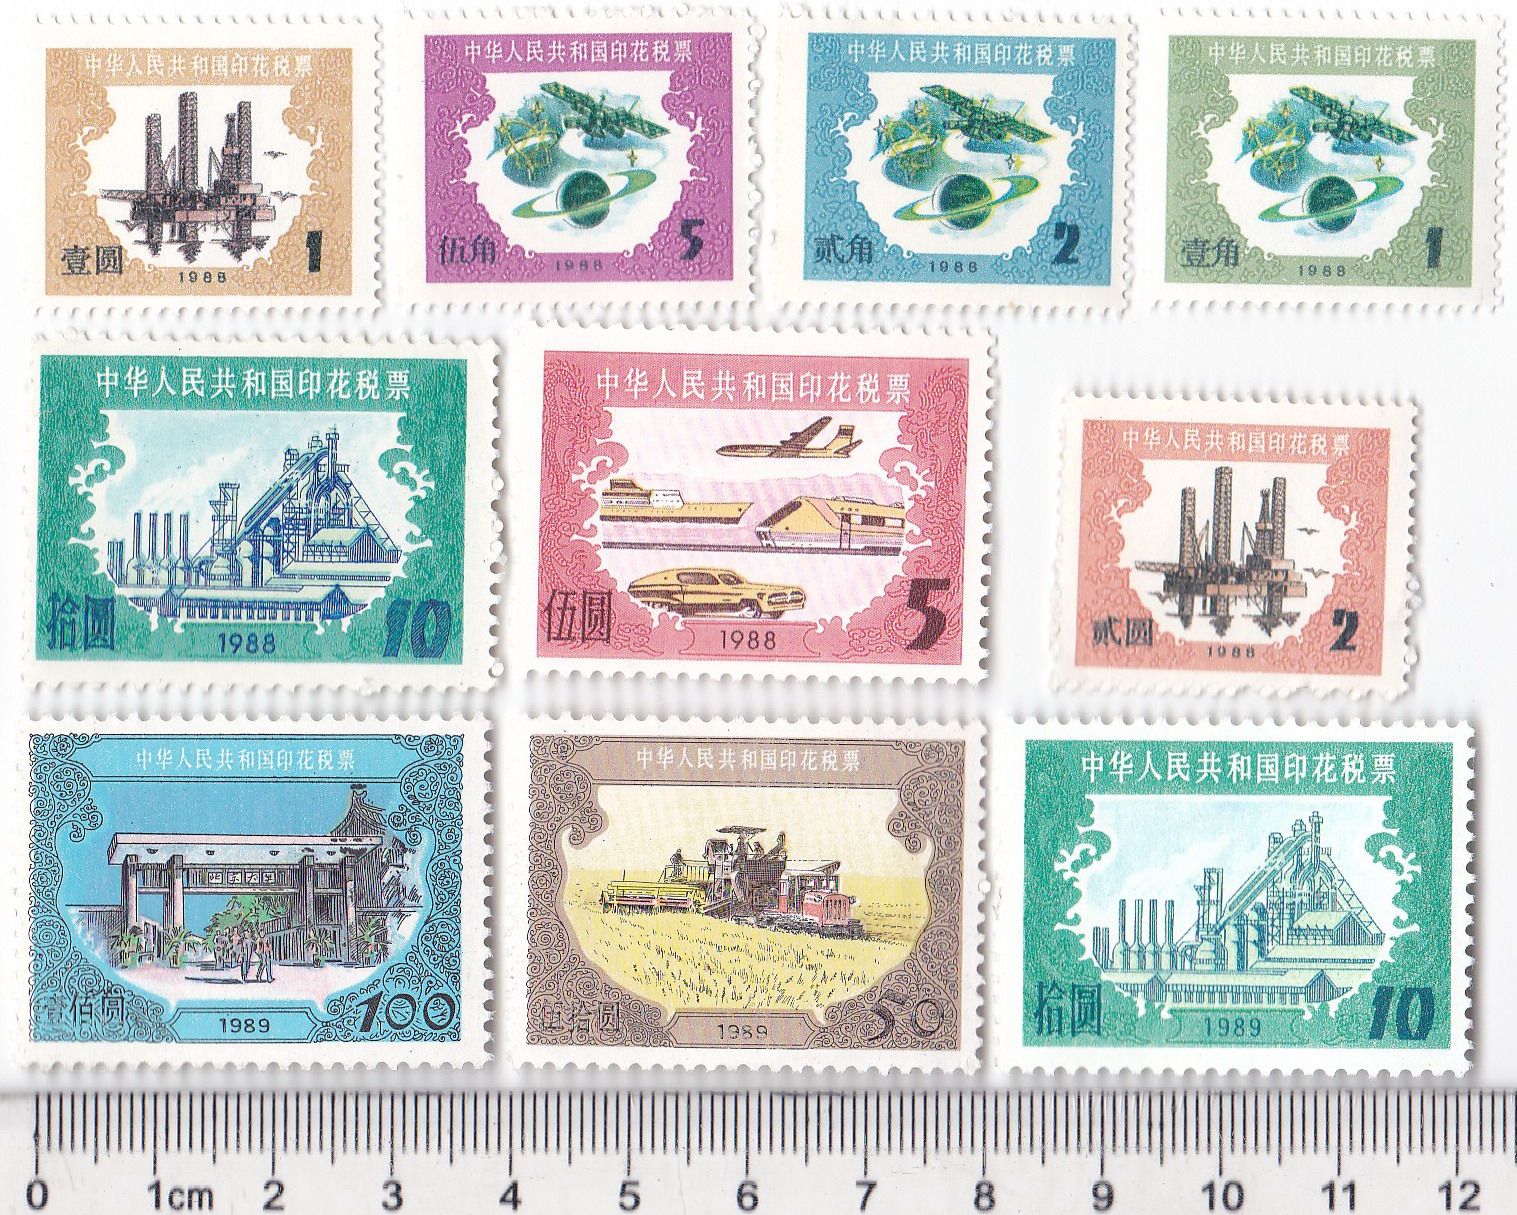 R2201, P.R.China Revenue Stamps, Full set 10 pcs, 1988-1989